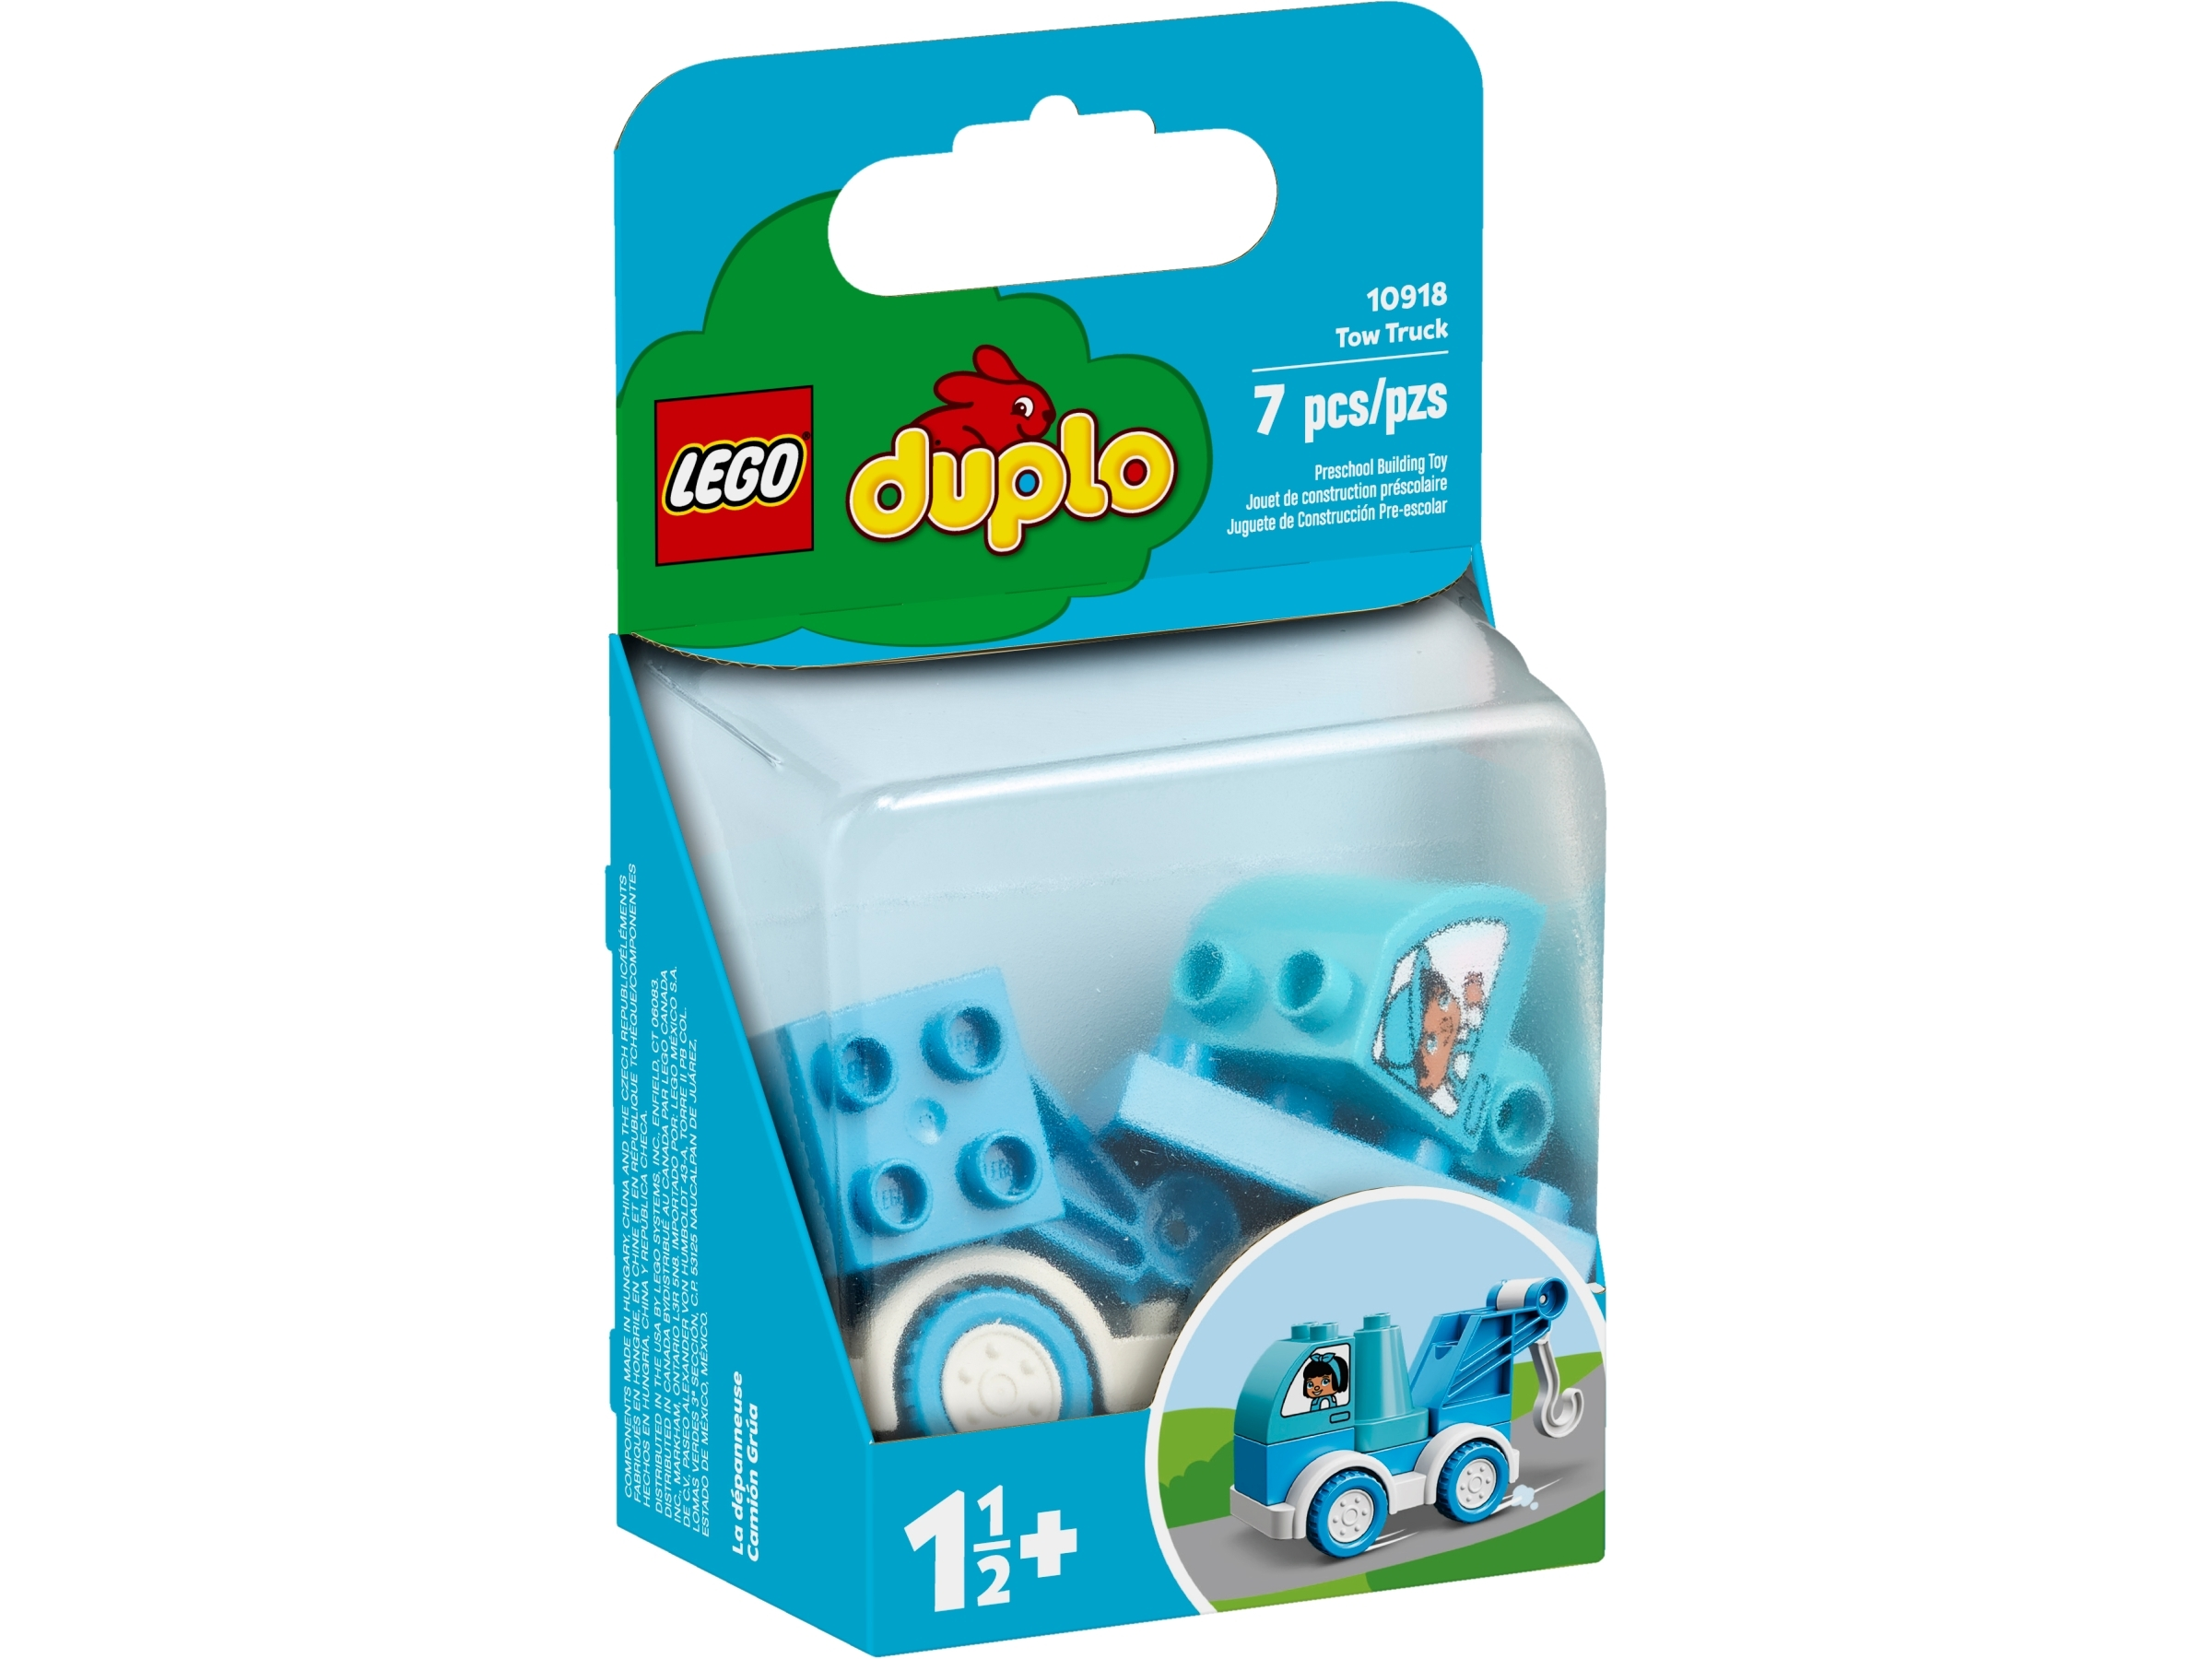 Tow Truck 10918 Duplo Buy Online At The Official Lego Shop Us